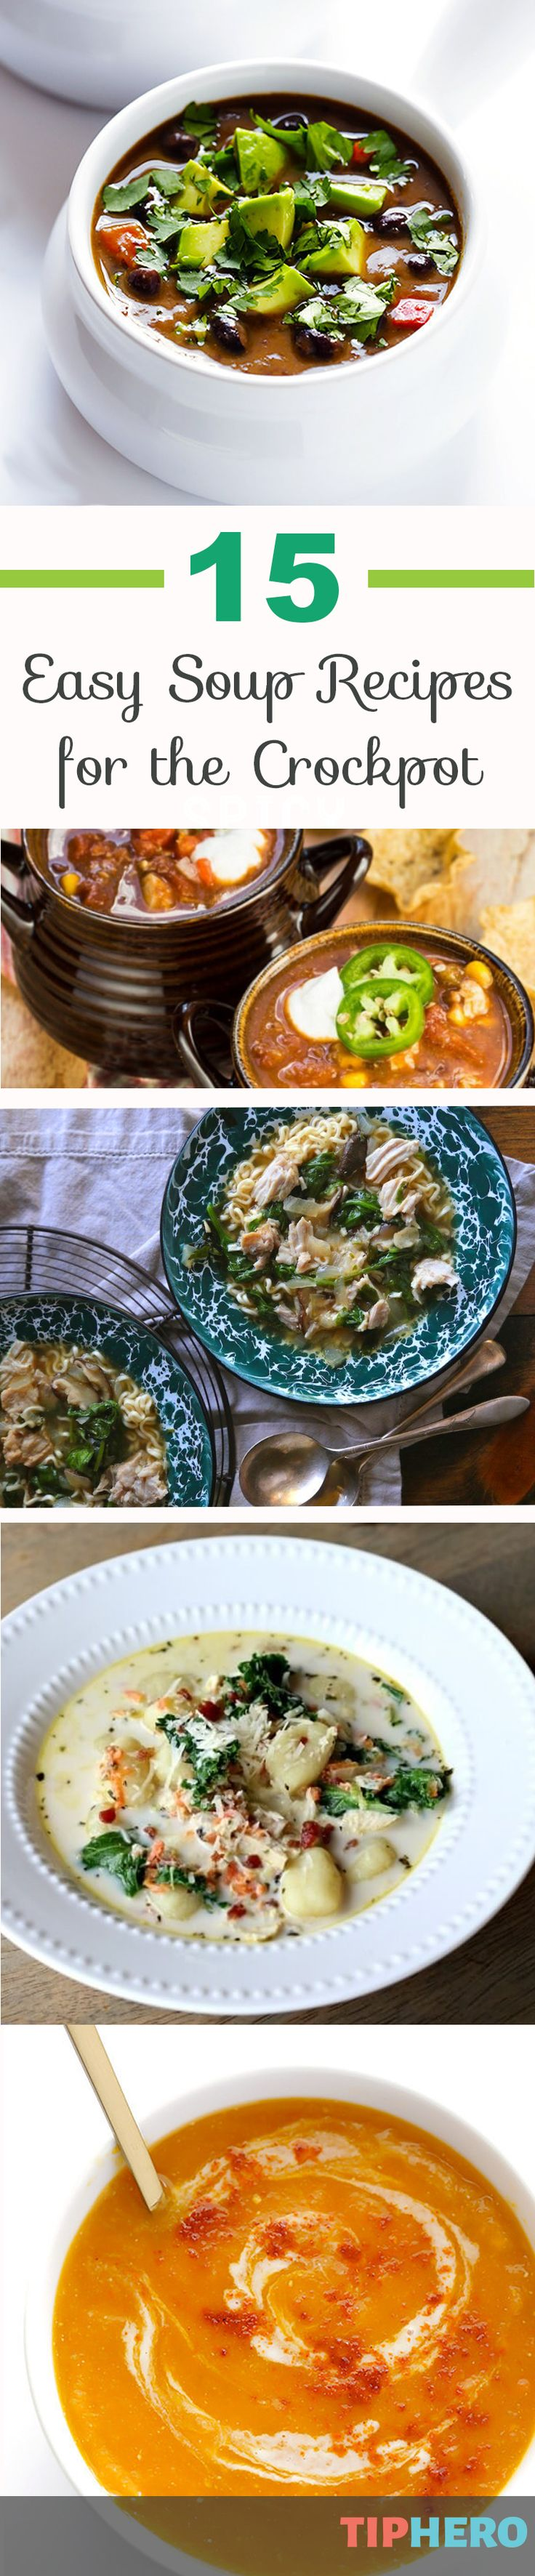 15 Slow Cooker Soup Recipes | 'Tis the season for soup and we put together a collection of some of our favorite crockpot soups that are super easy to make. From minestrone to black bean soup to thai chicken soup to butternut squash soup, there are so many delicious options you'll want to try them all. Enjoy! Click for recipes.